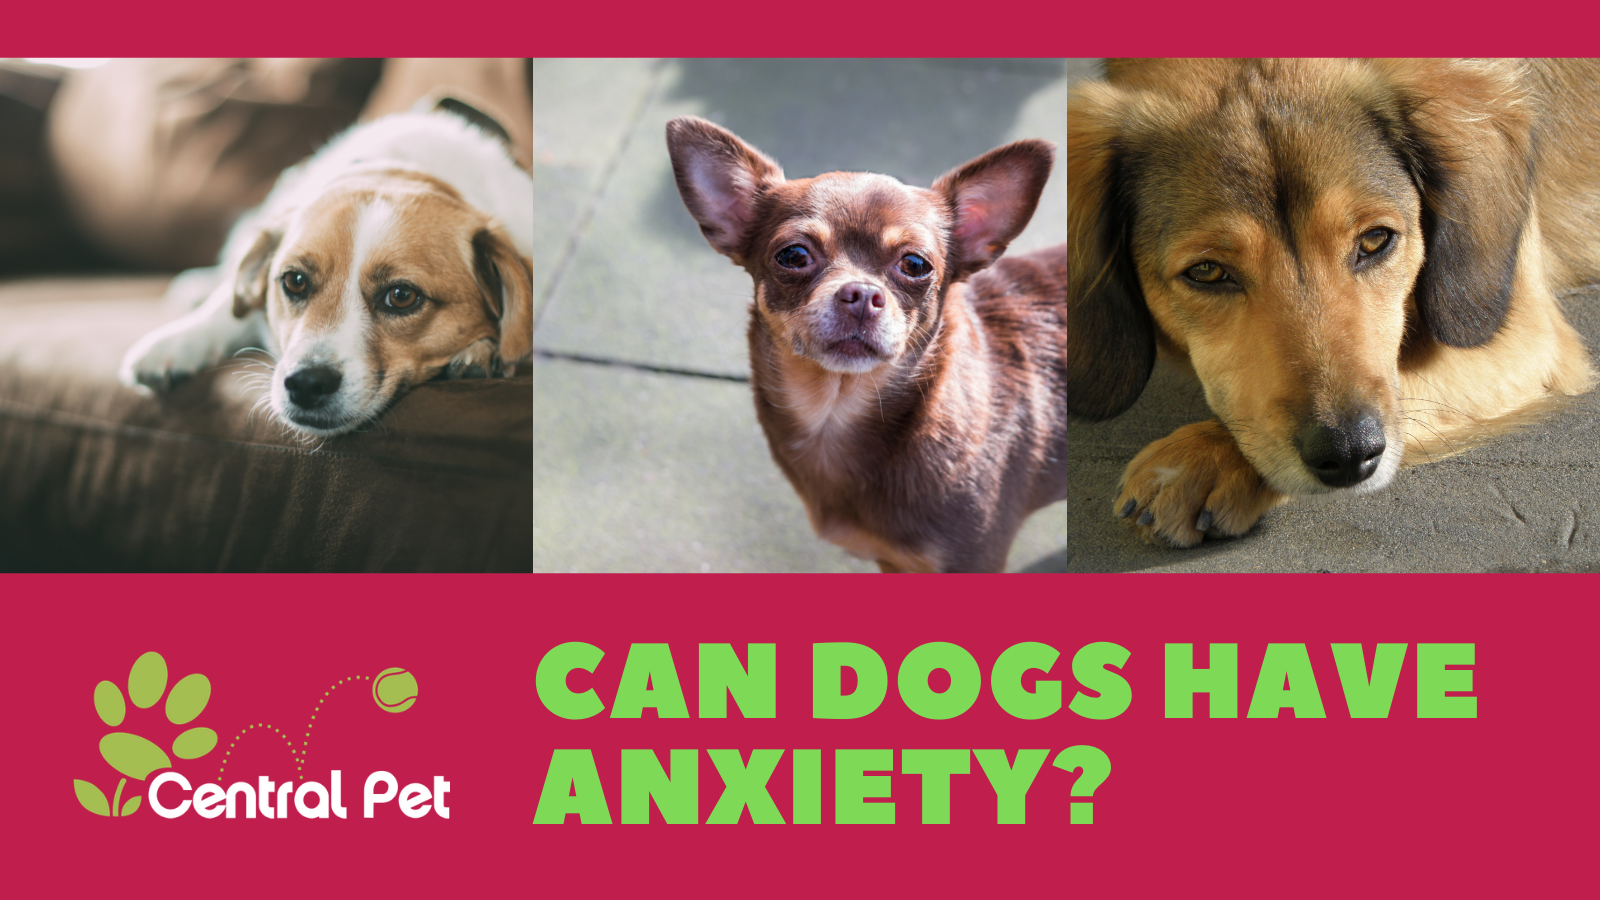 Can Dogs Have Anxiety?